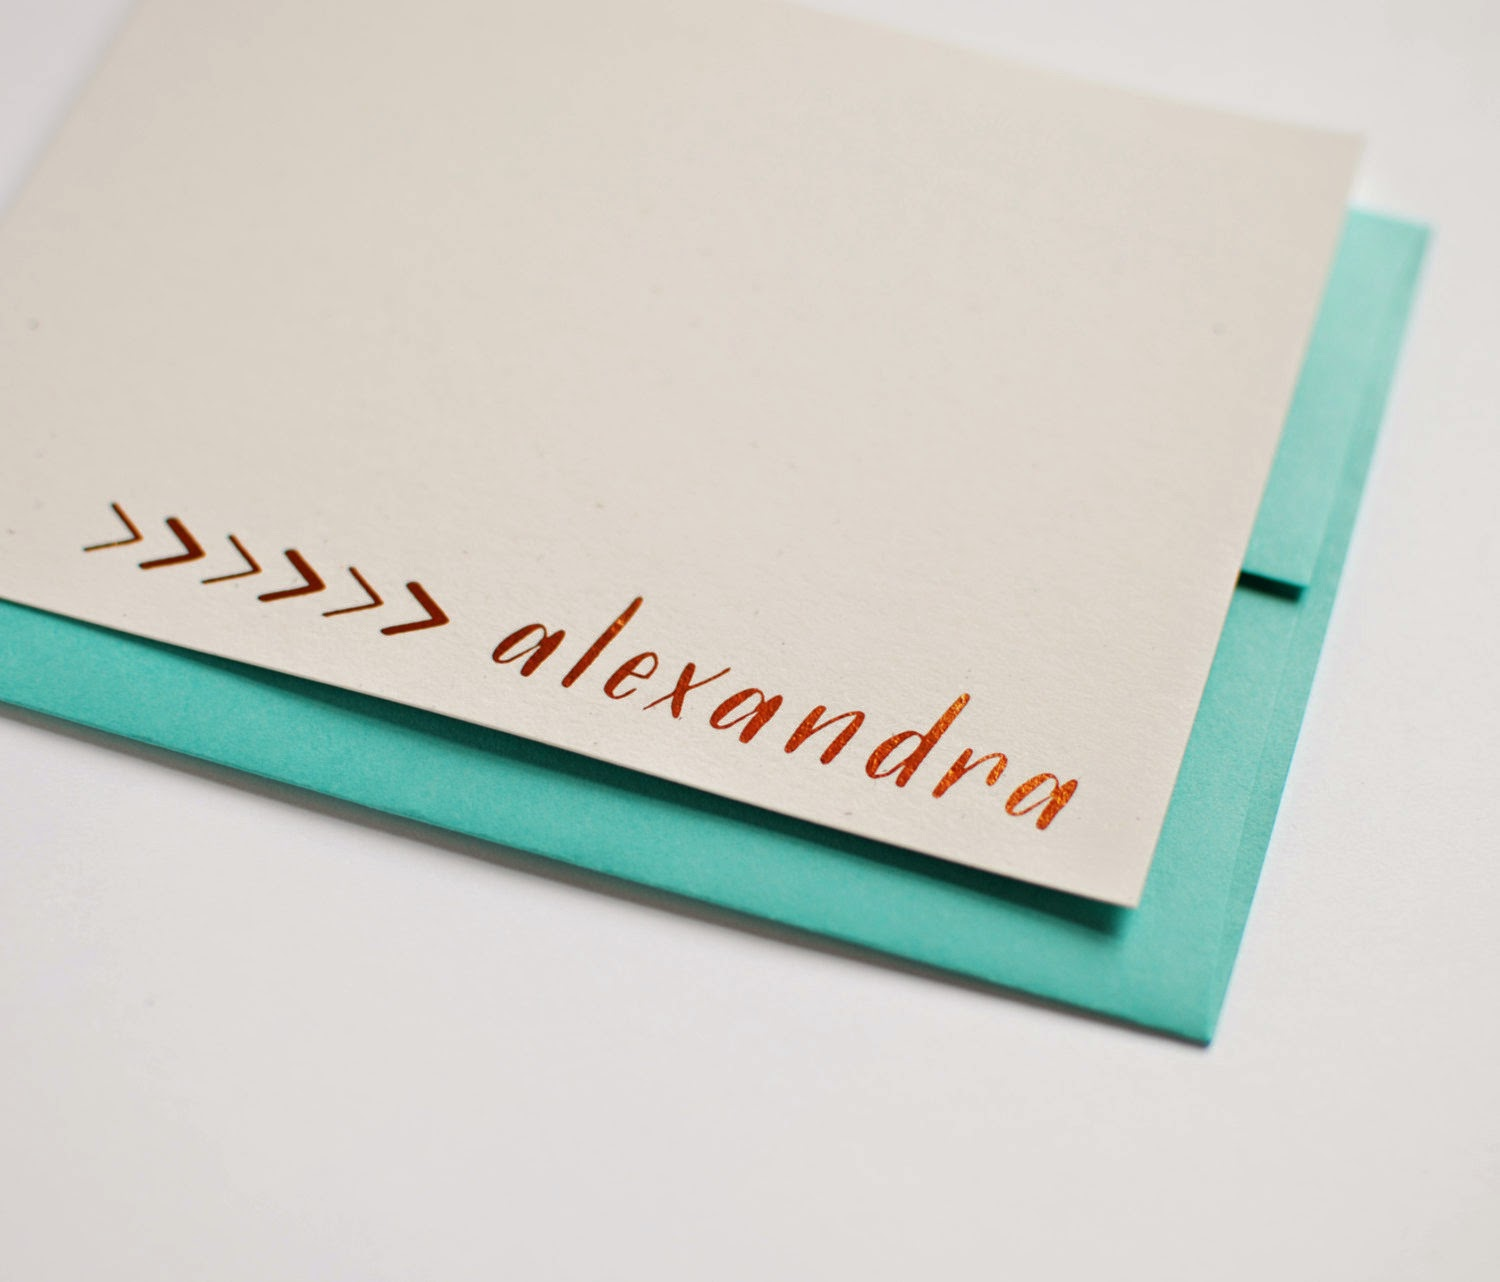 https://www.etsy.com/listing/189344610/copper-foil-arrow-stationery?ref=shop_home_active_11